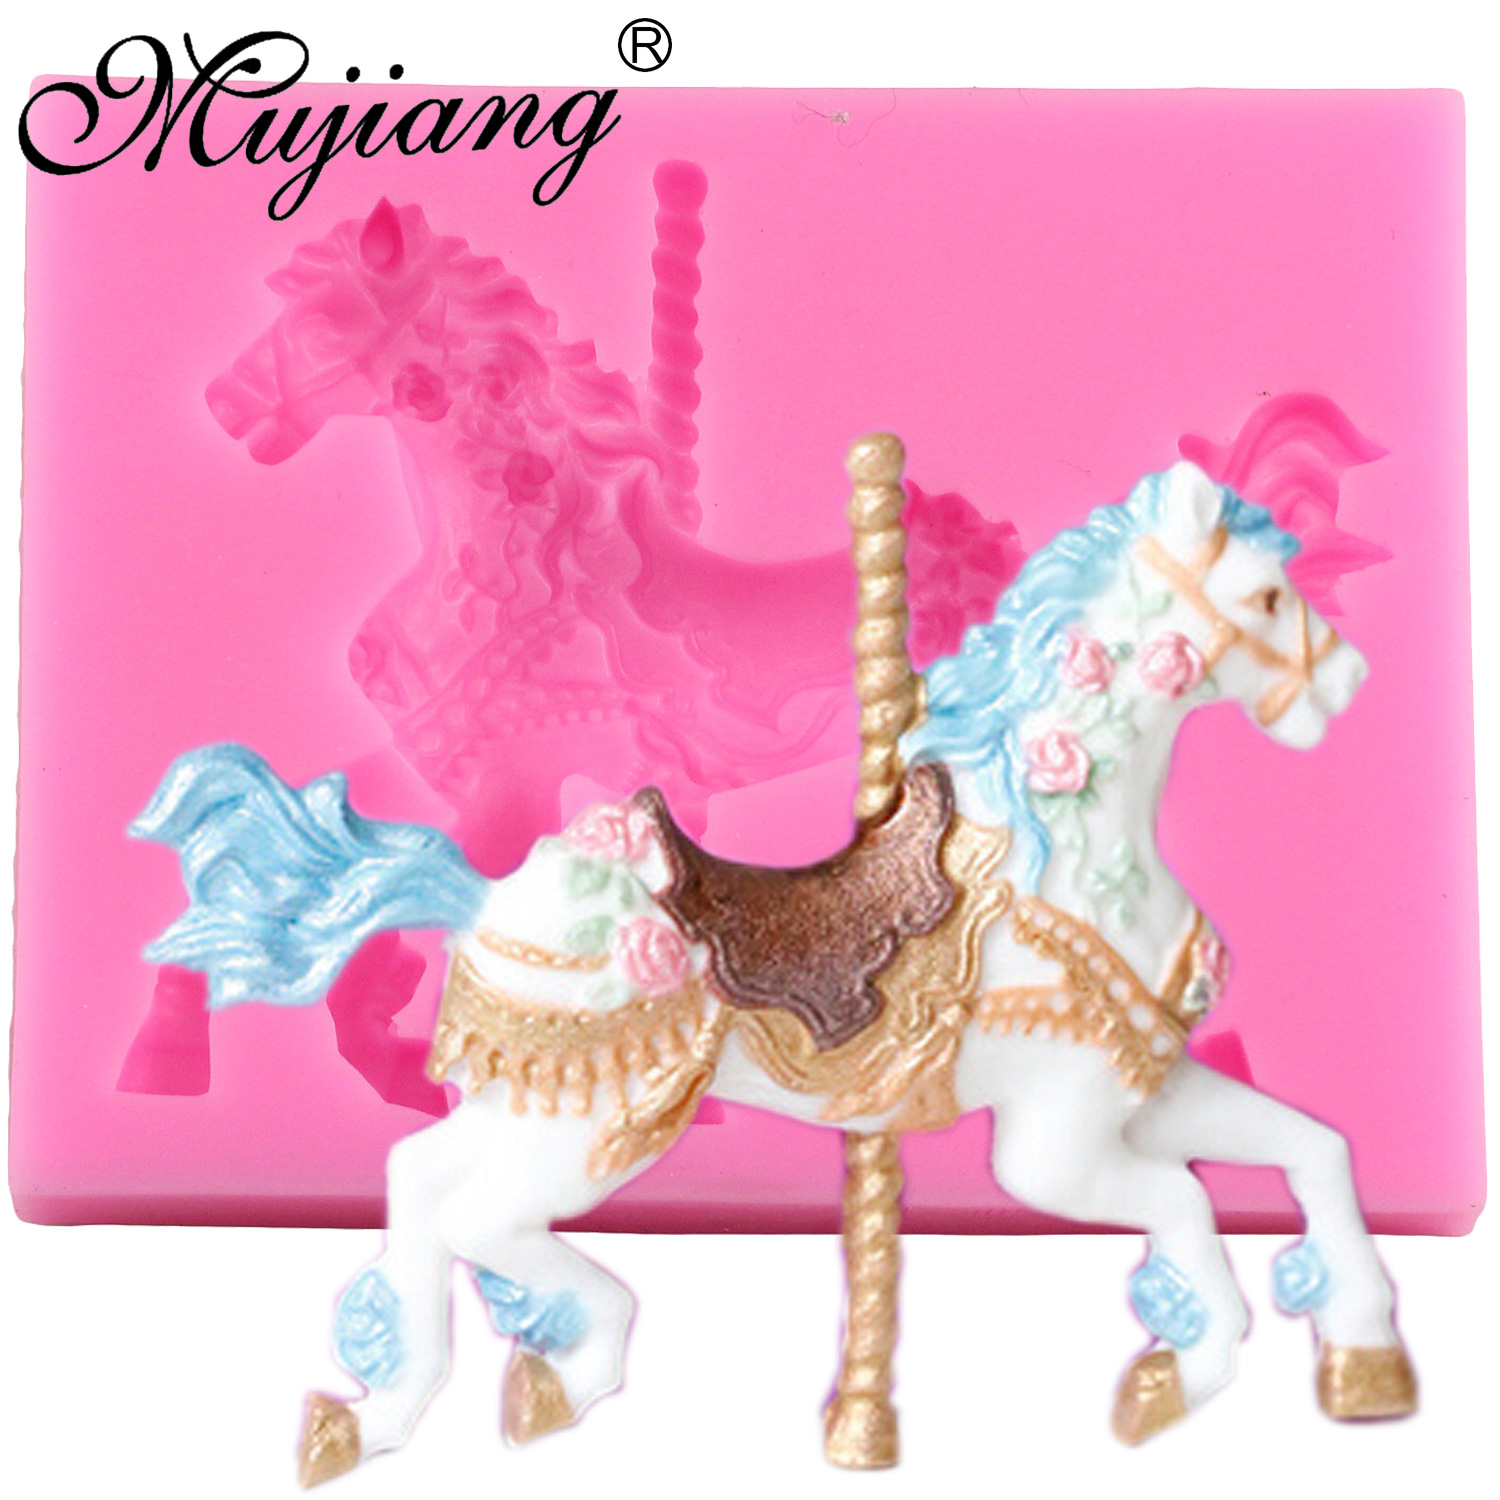 Mujiang 3D Jewelry Carousel Horse Silicone Fondant Moulds Party Cake - Խոհանոց, ճաշարան եւ բար